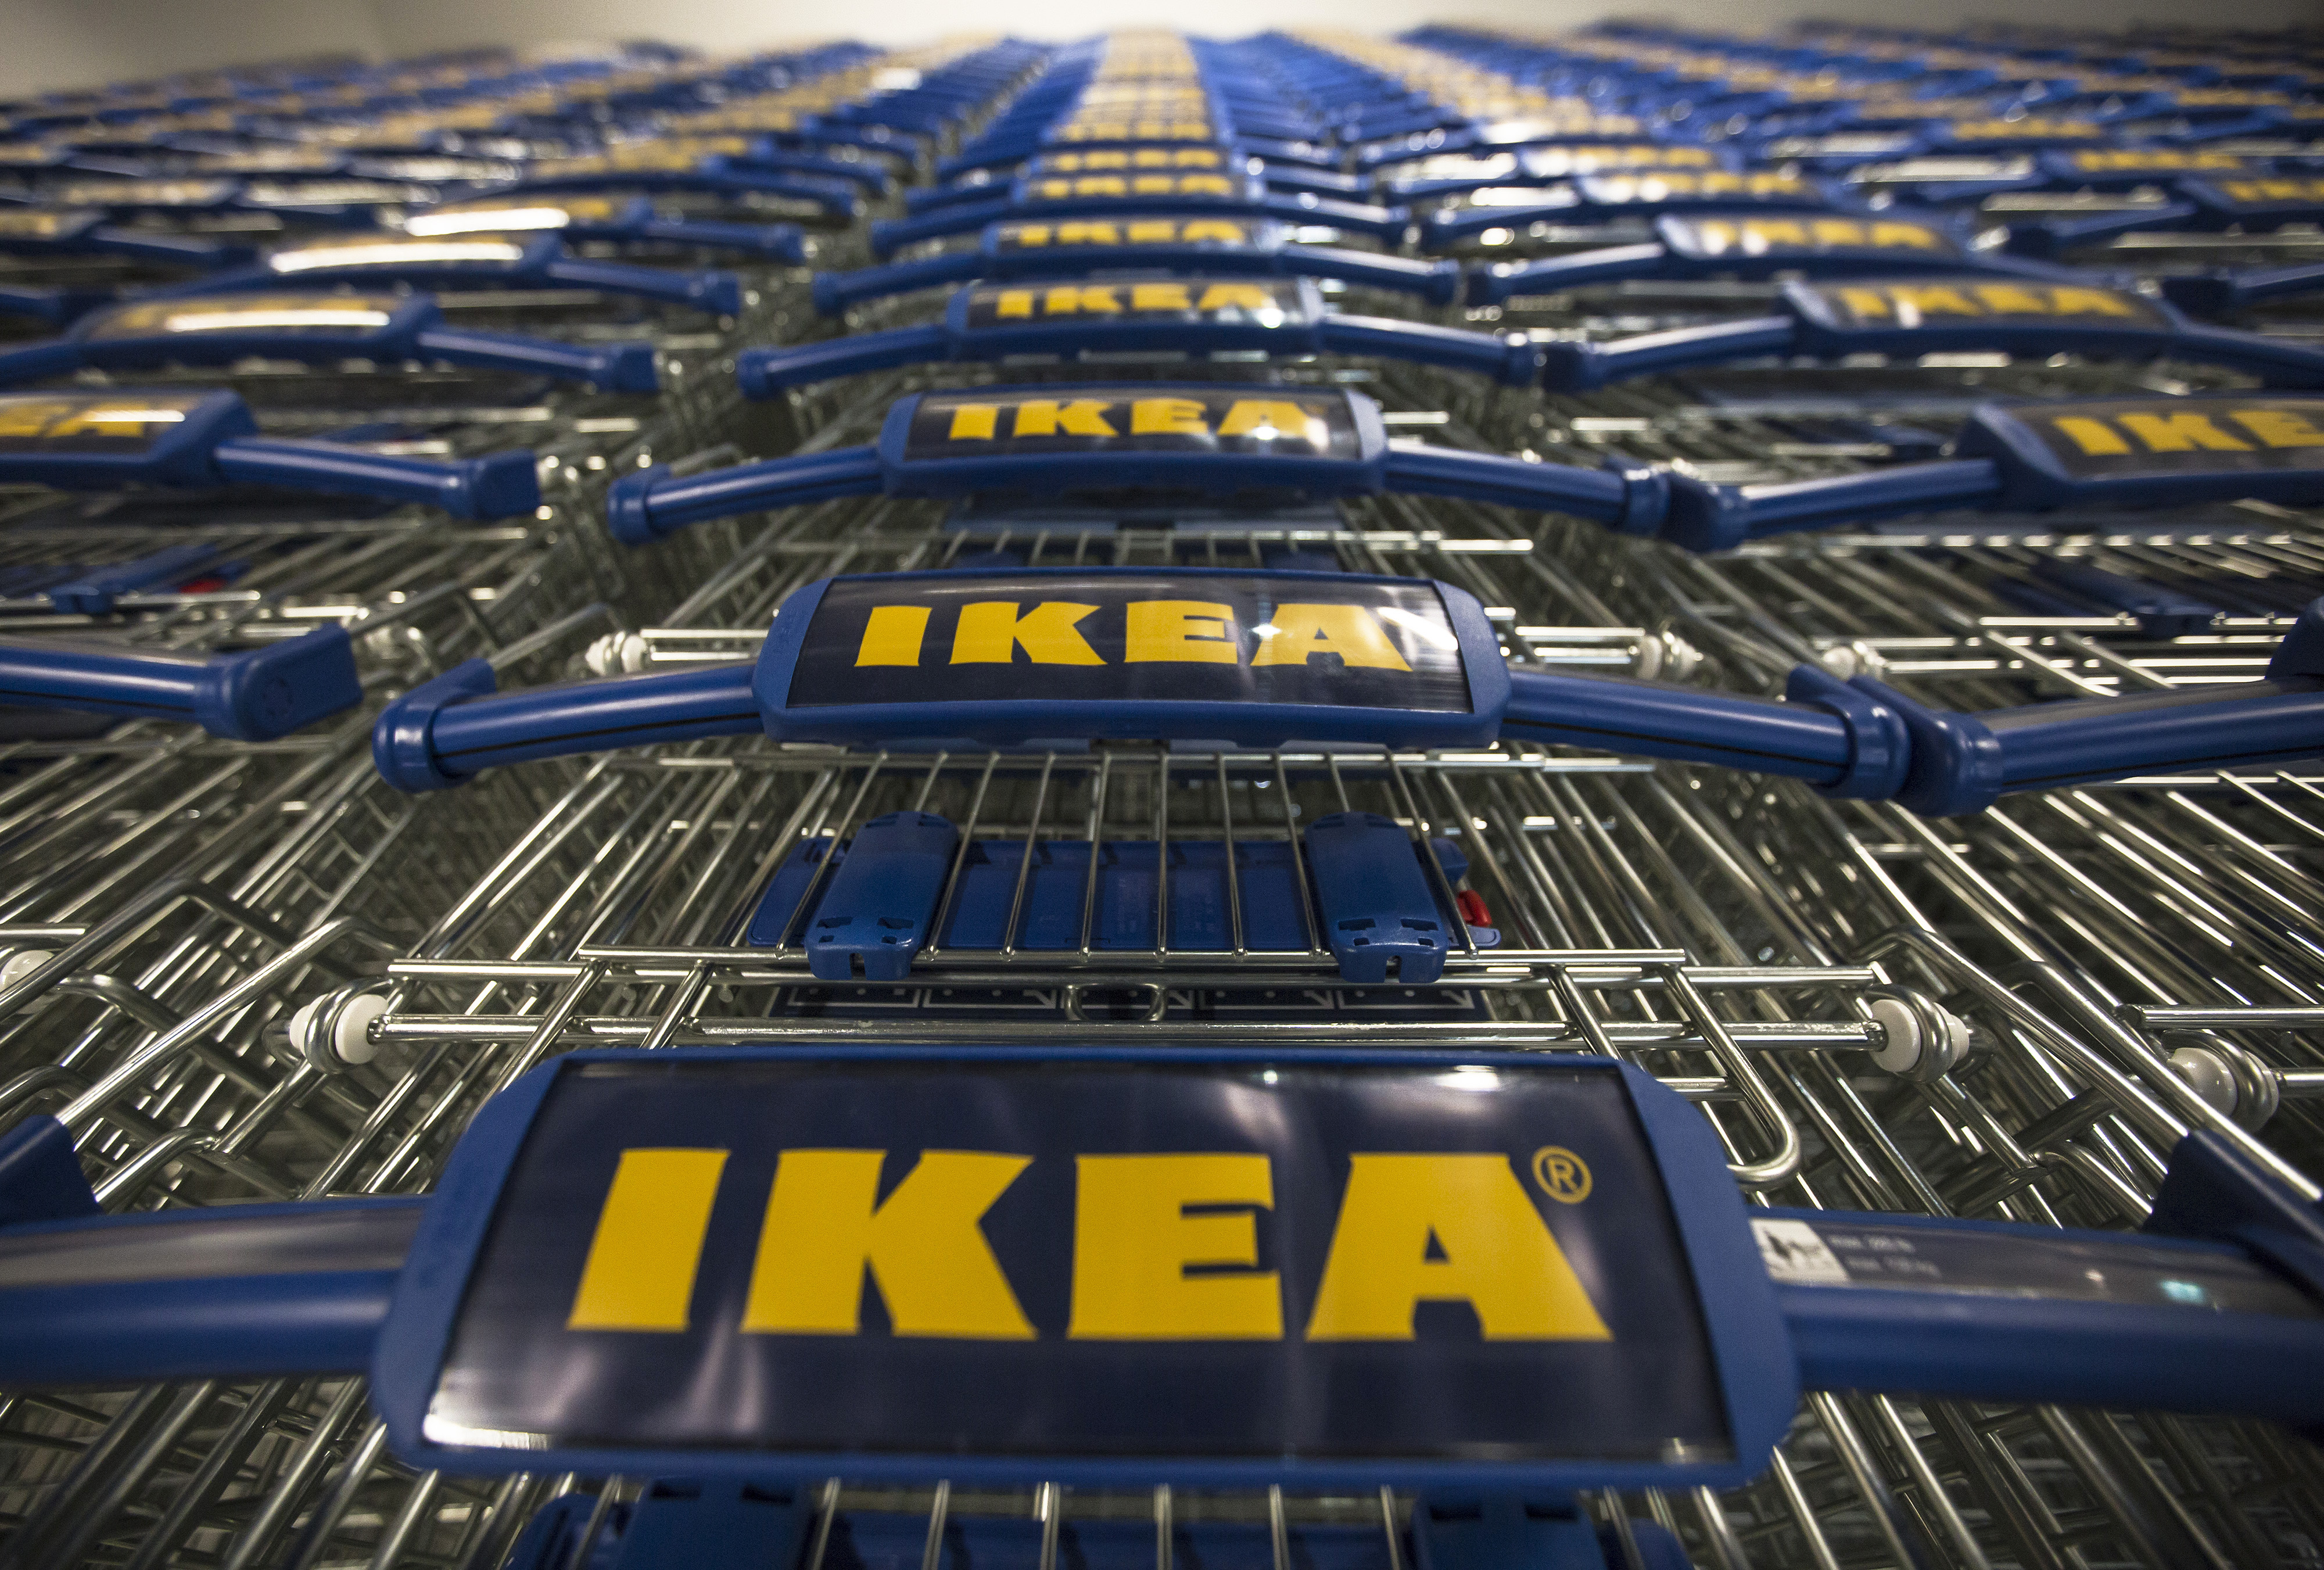 Opening Of IKEA Of Sweden AB's First Serbian Megastore